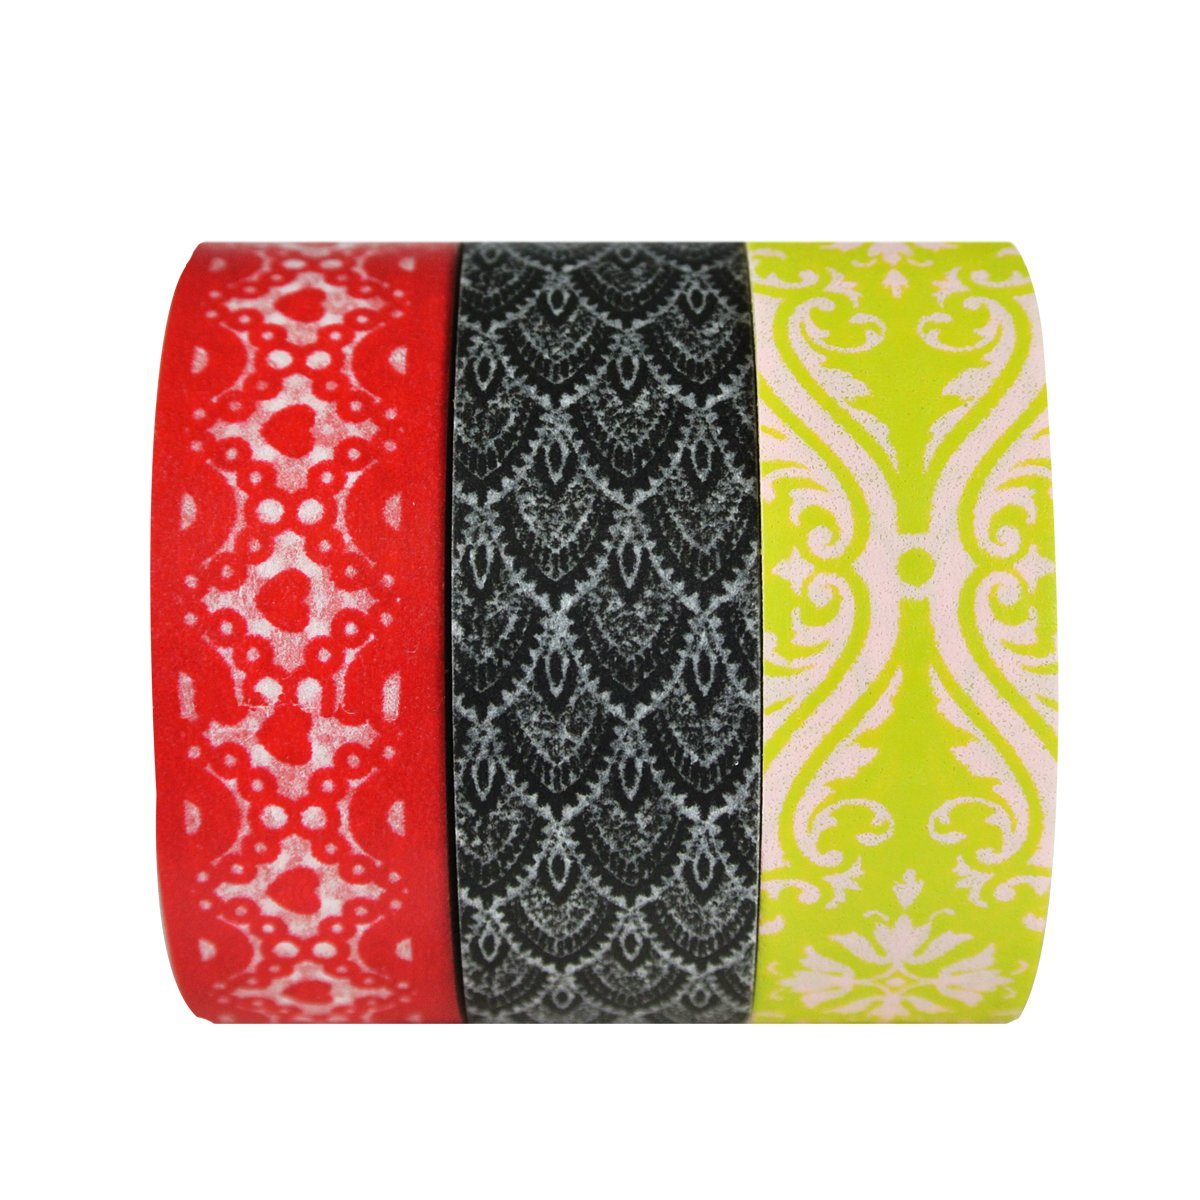 Wrapables Heart Lace and Damask Japanese Washi Masking Tape (set of 3)